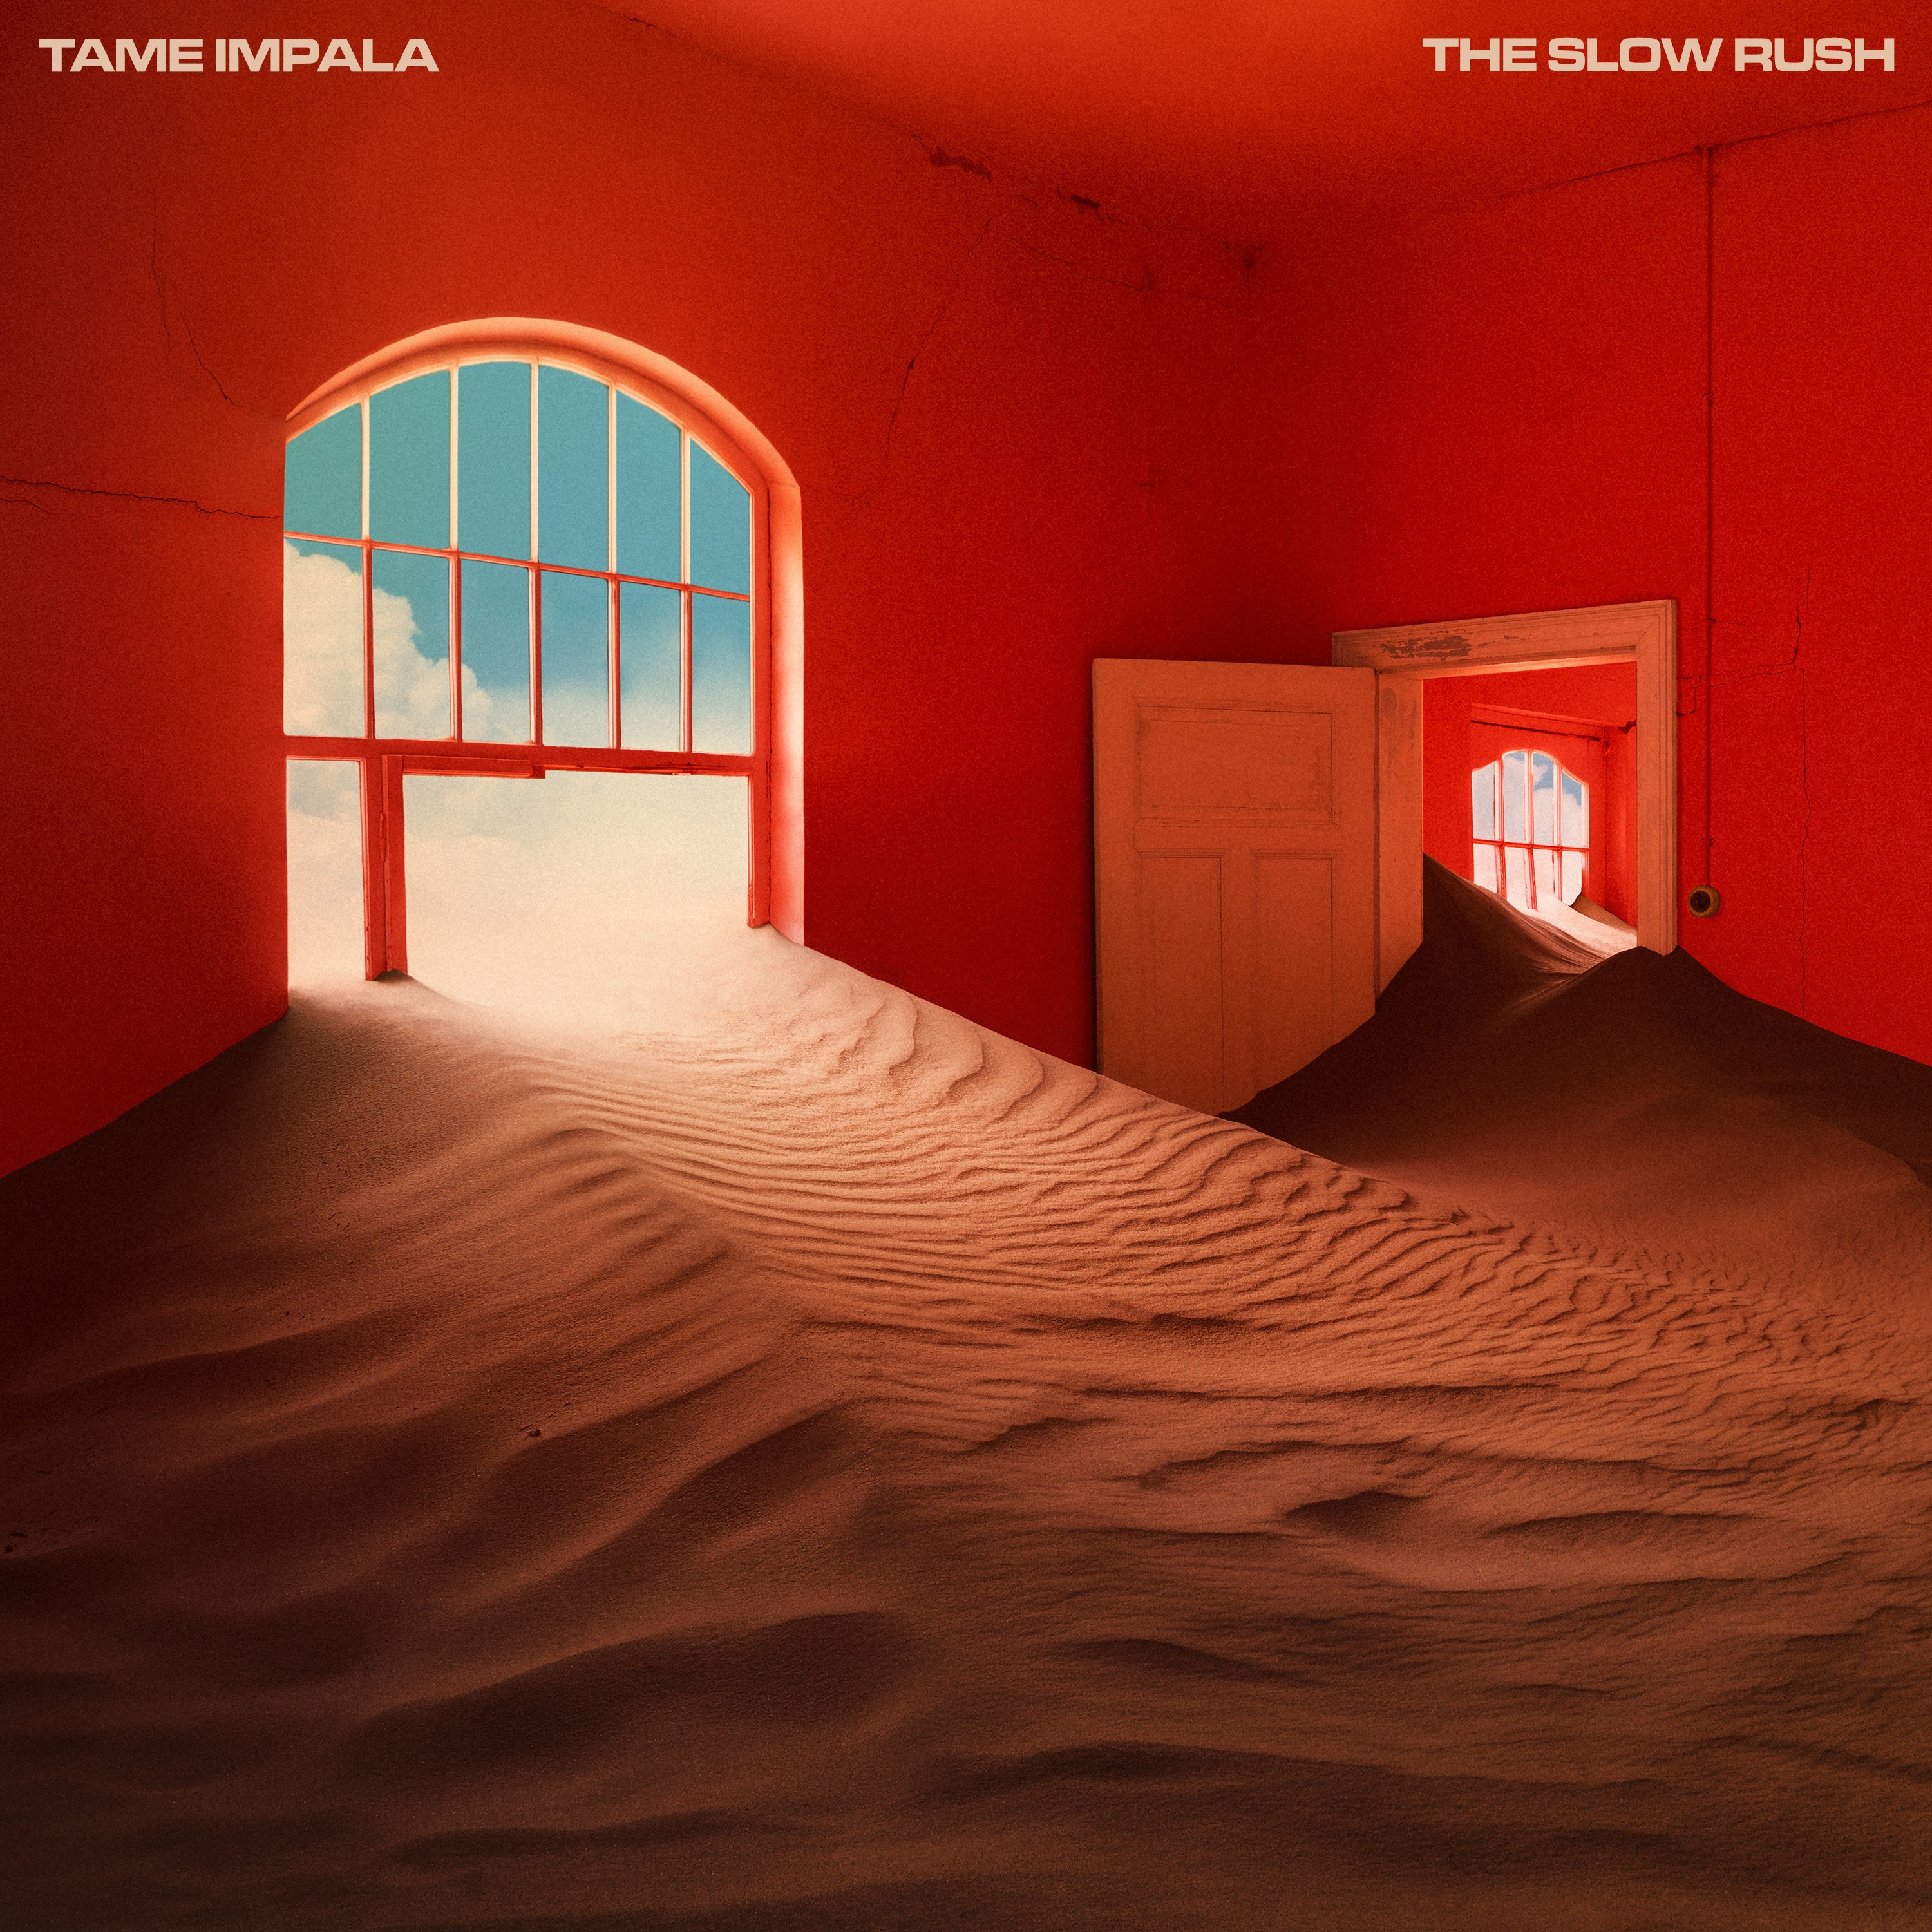 Image result for tame impala the slow rush